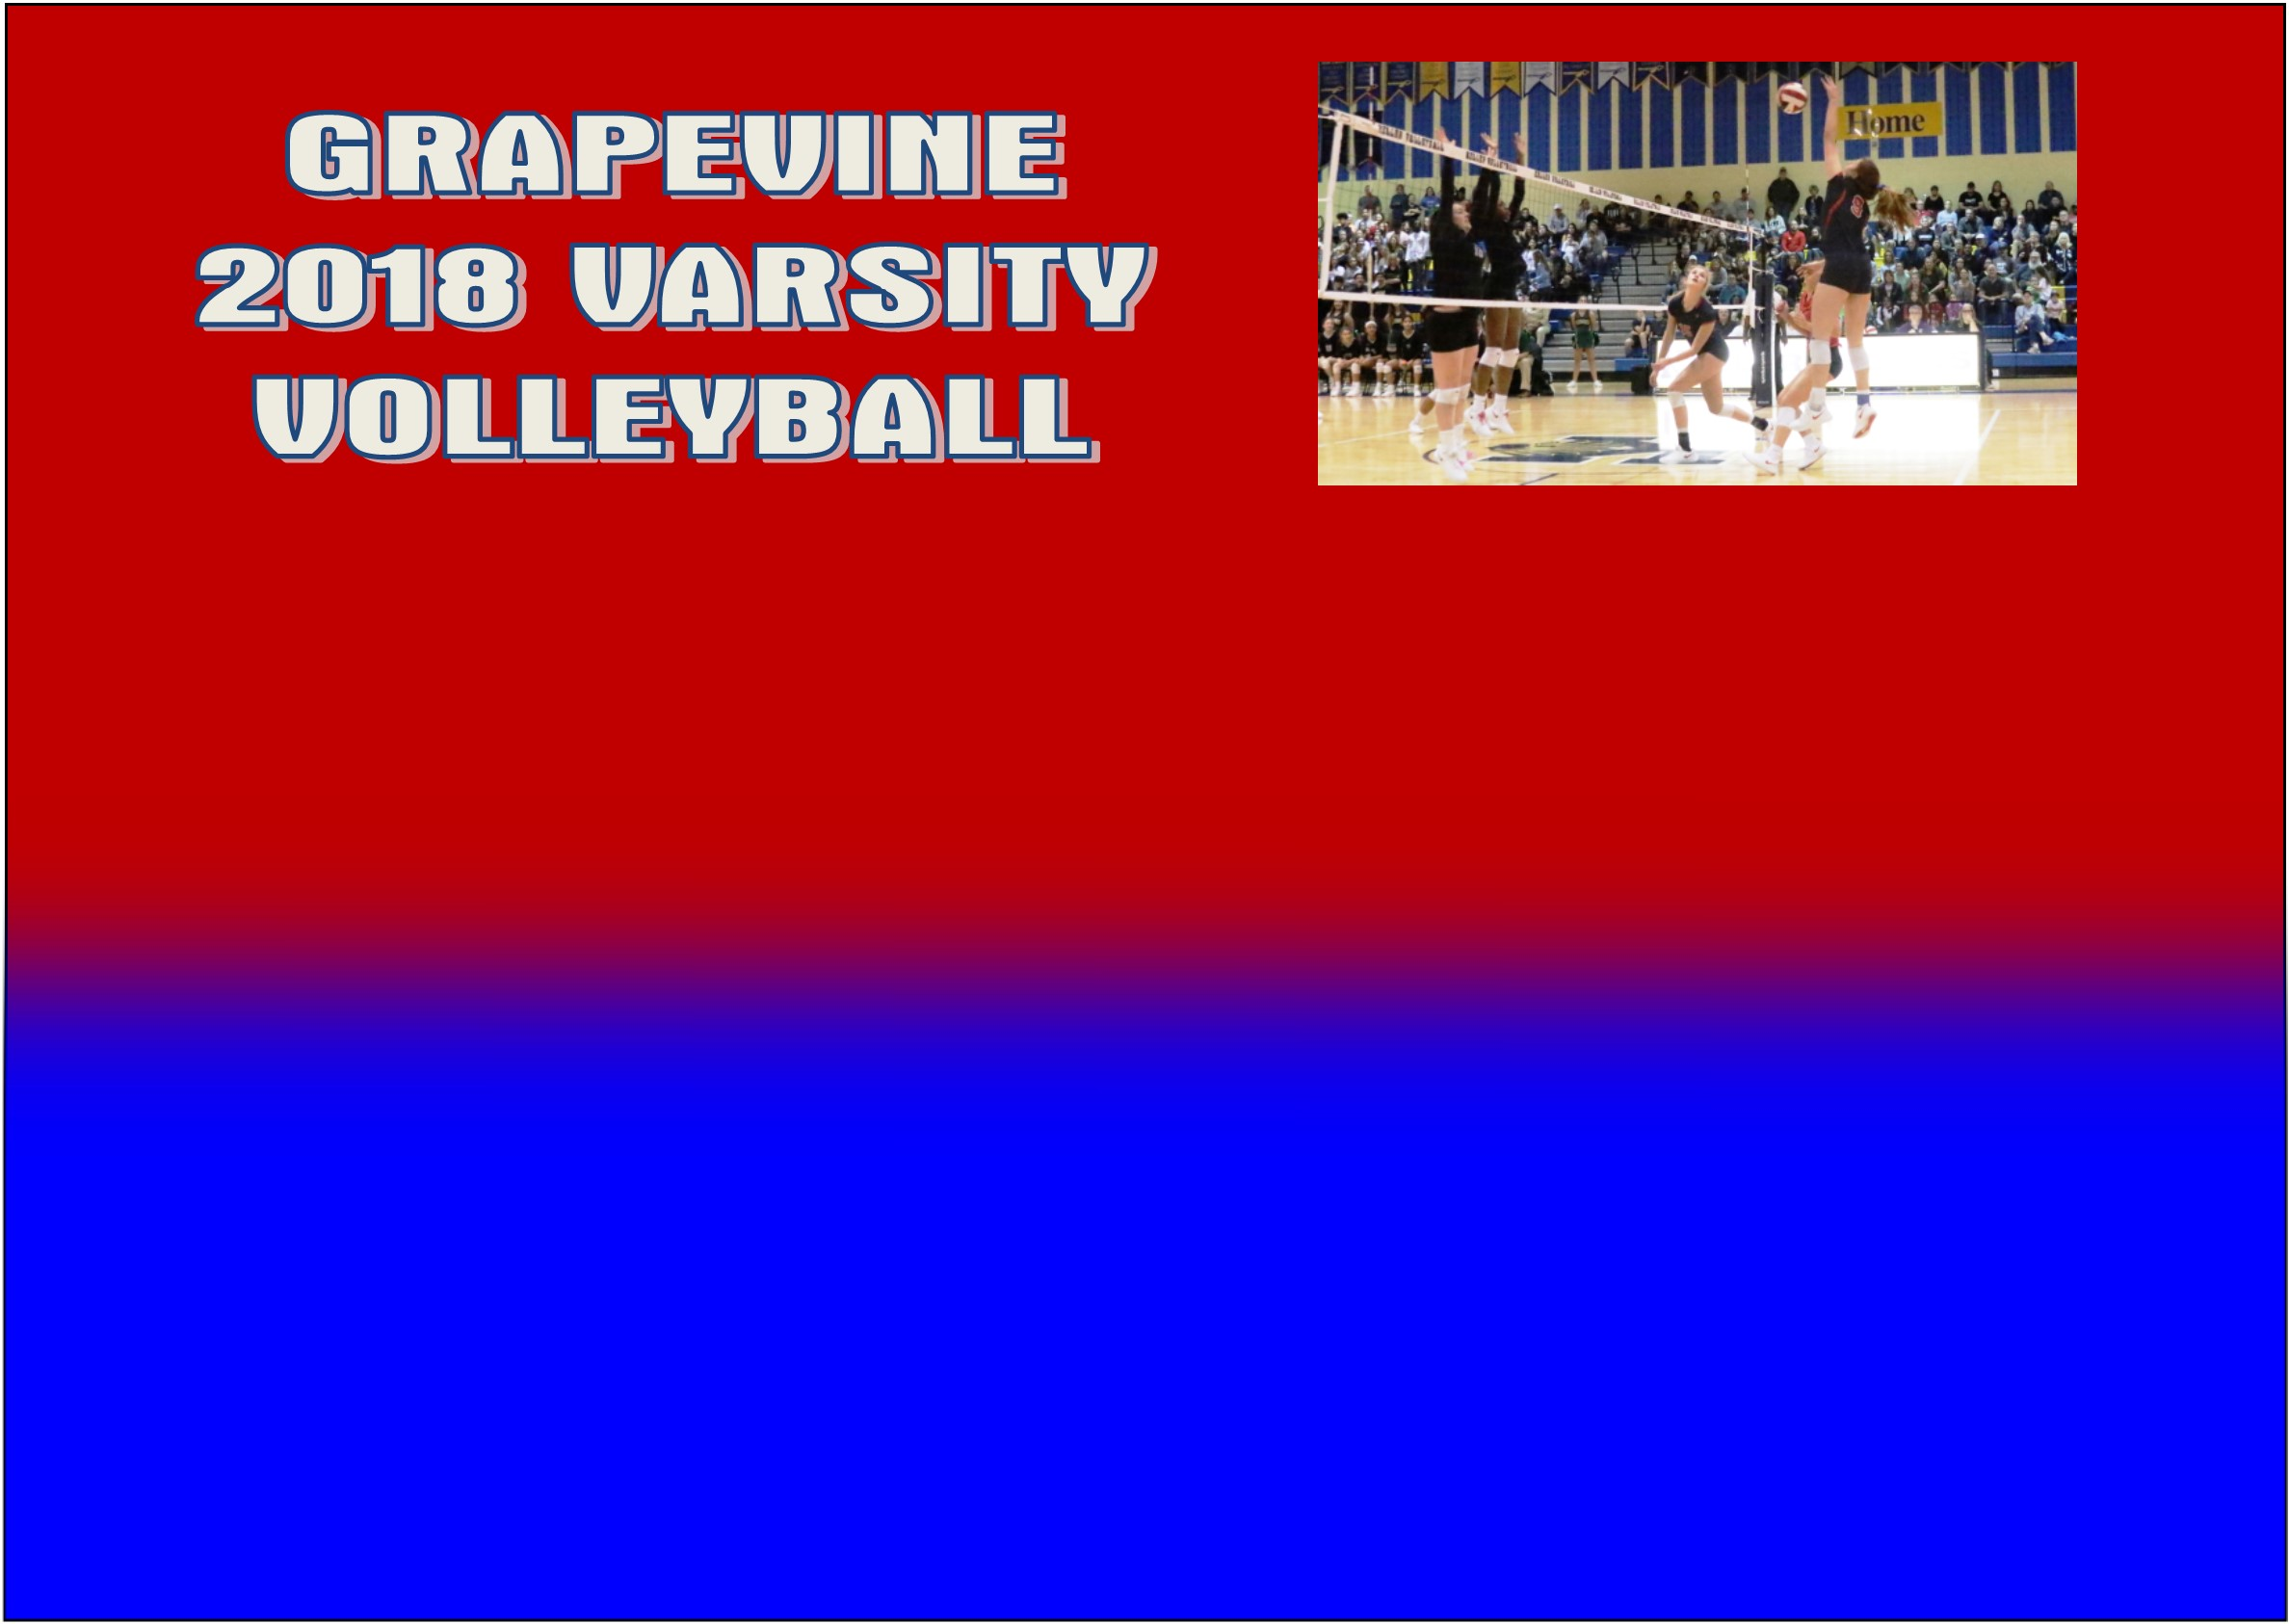 Volleyball: Grapevine Falls to Birdville in Quarter-Finals Playoff Match 3-1